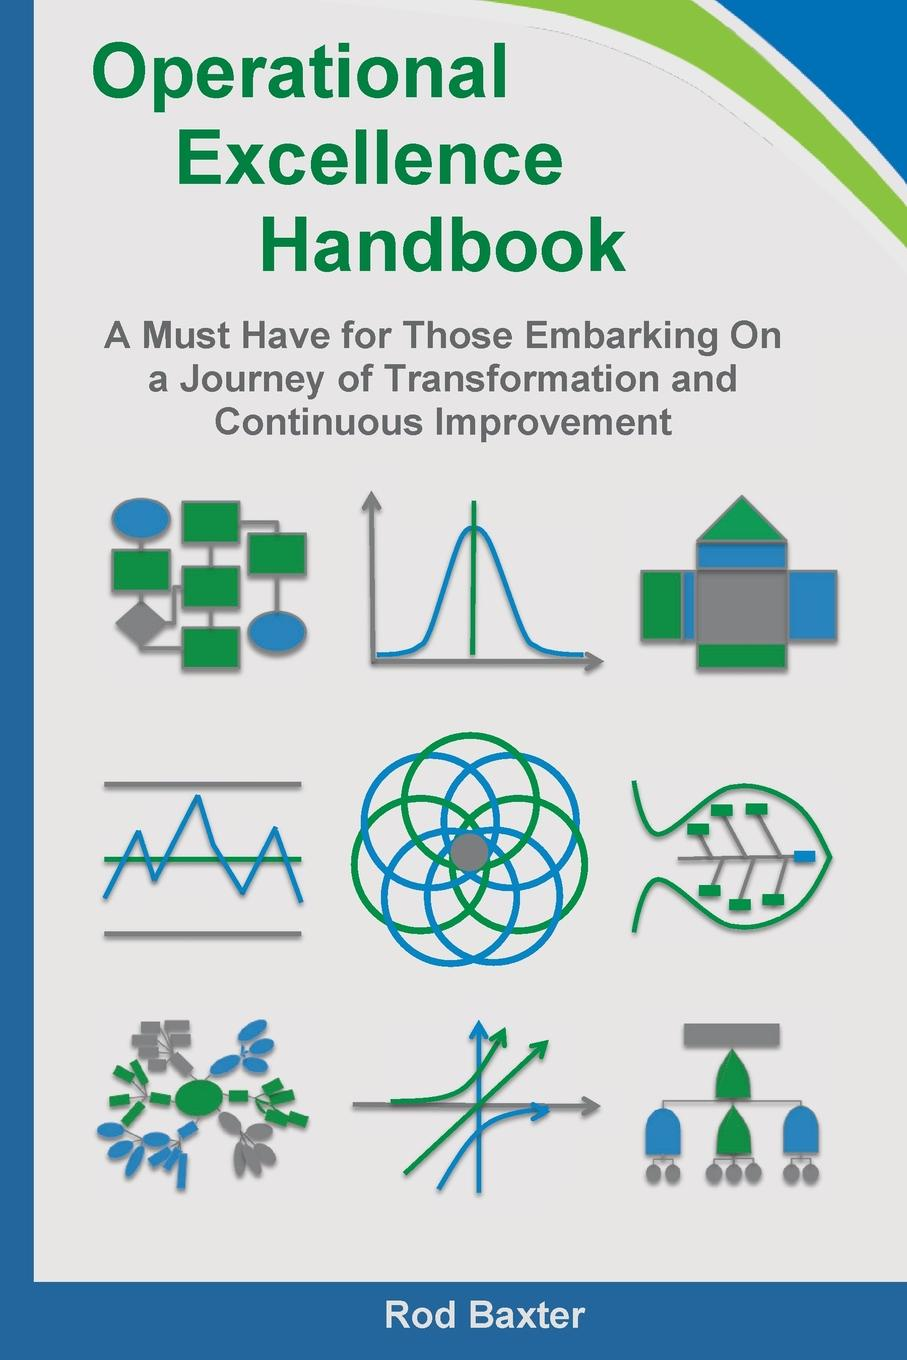 Rod Baxter Operational Excellence Handbook. A Must Have for Those Embarking On a Journey of Transformation and Continuous Improvement antoinette oglethorpe grow your geeks a handbook for developing leaders in high tech organisations